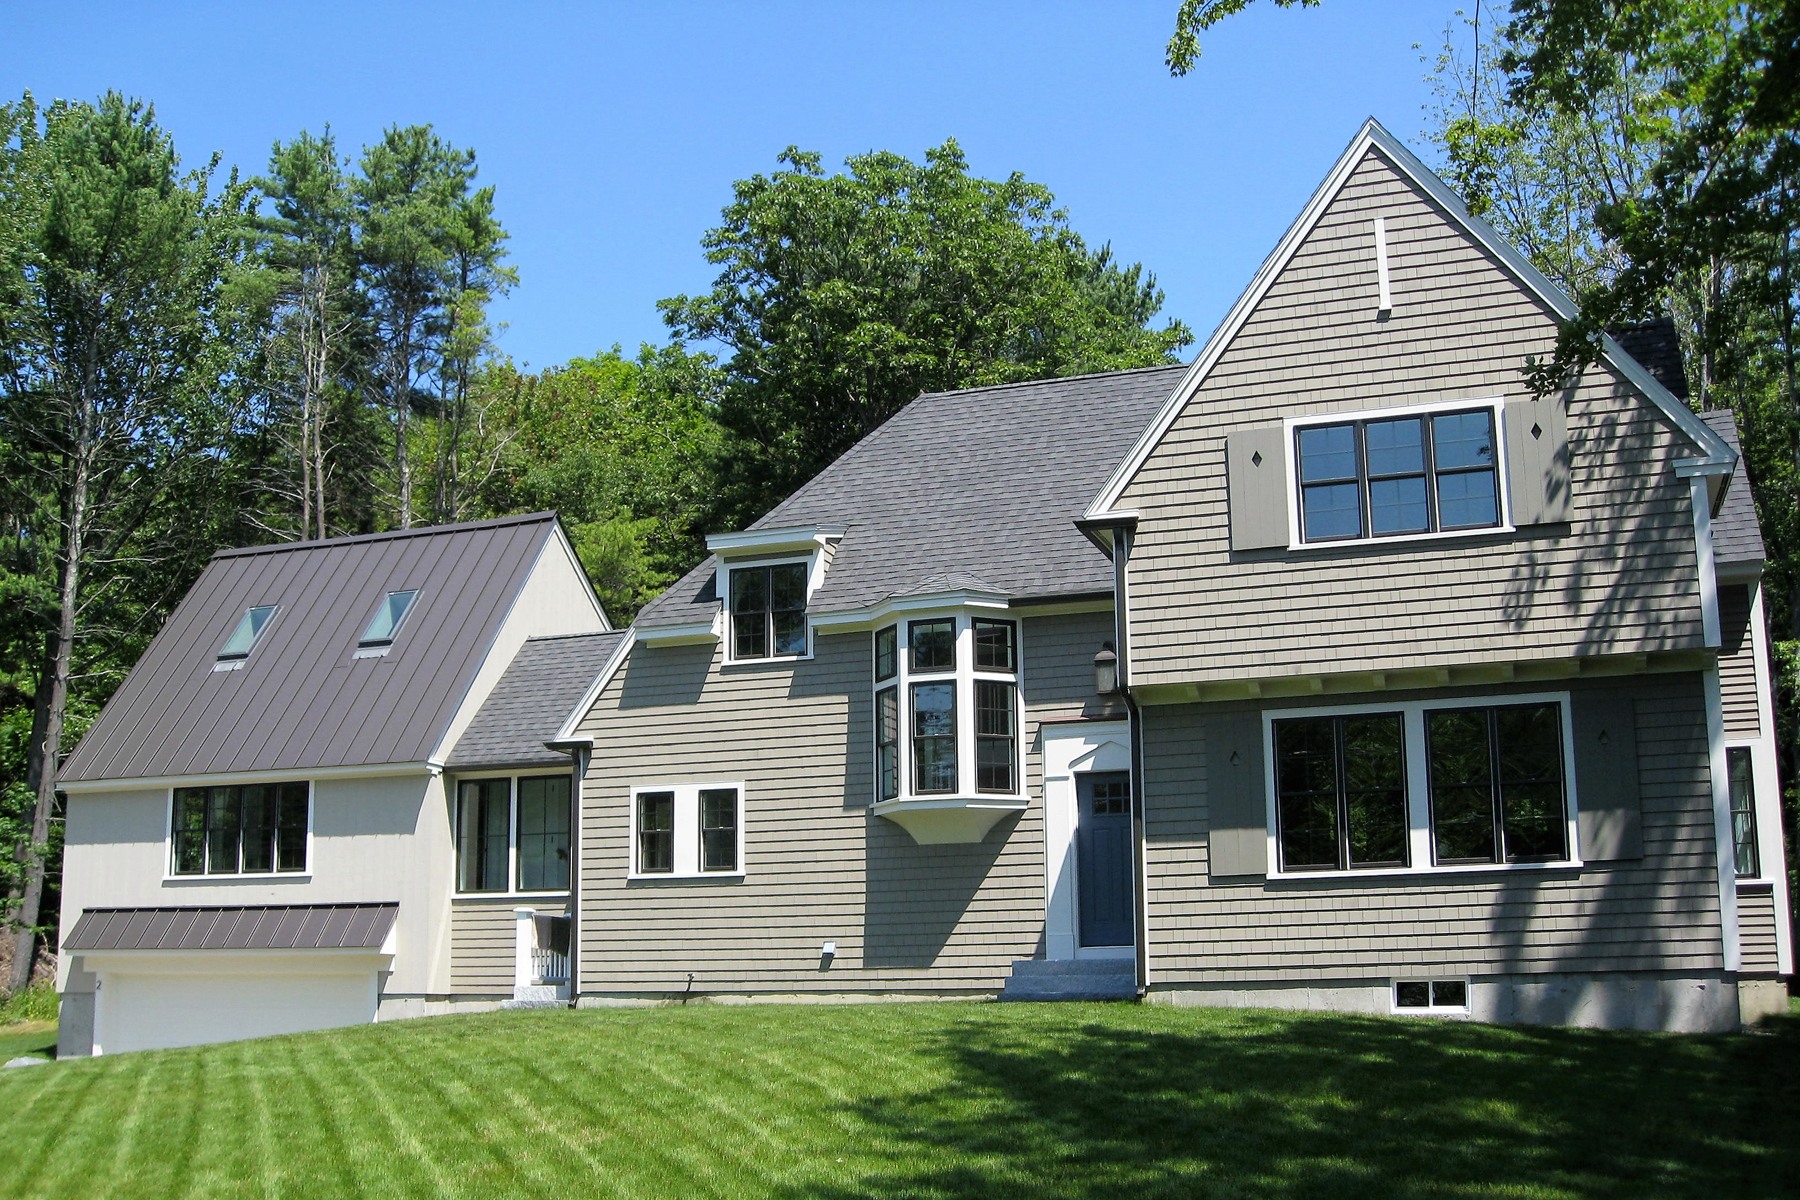 Single Family Home for Sale at 2 Woodlawn Avenue 2 Woodlawn Avenue Kennebunkport, Maine 04046 United States